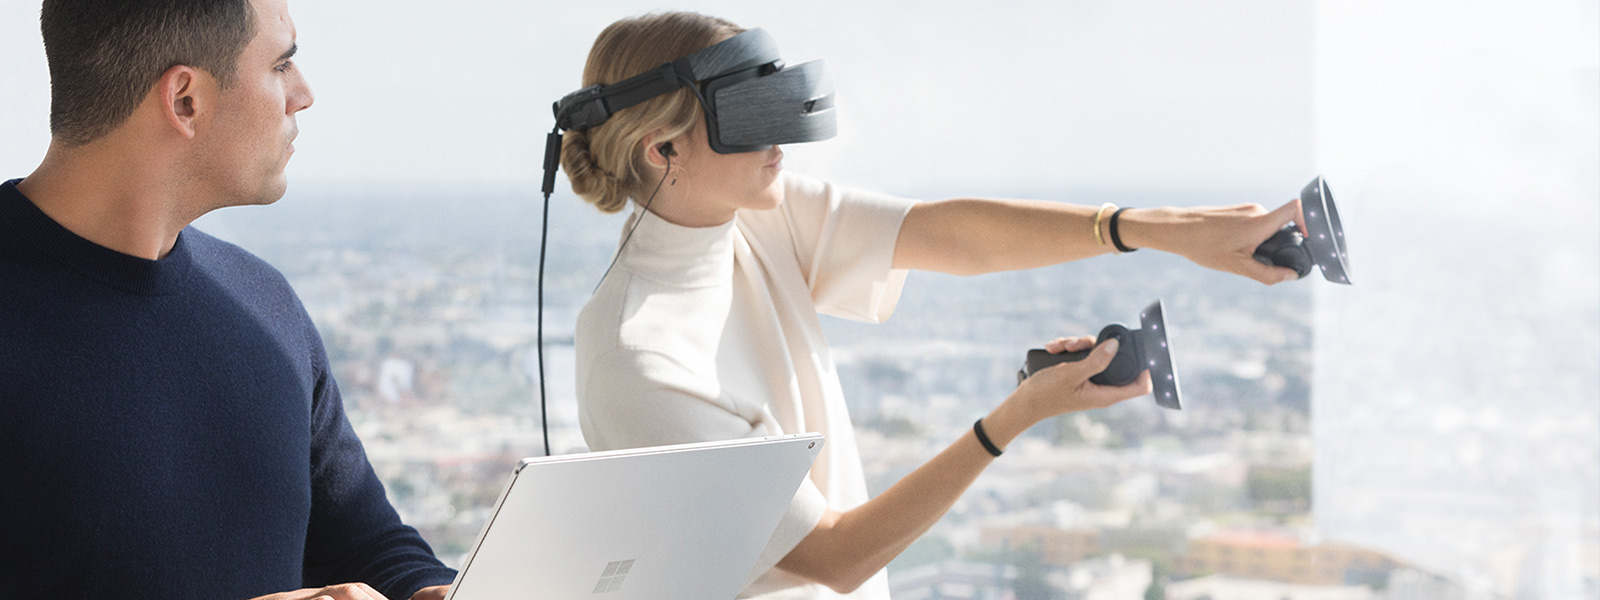 A man using a Surface Book 2 and a woman using a Windows Mixed Reality headset and motion controllers